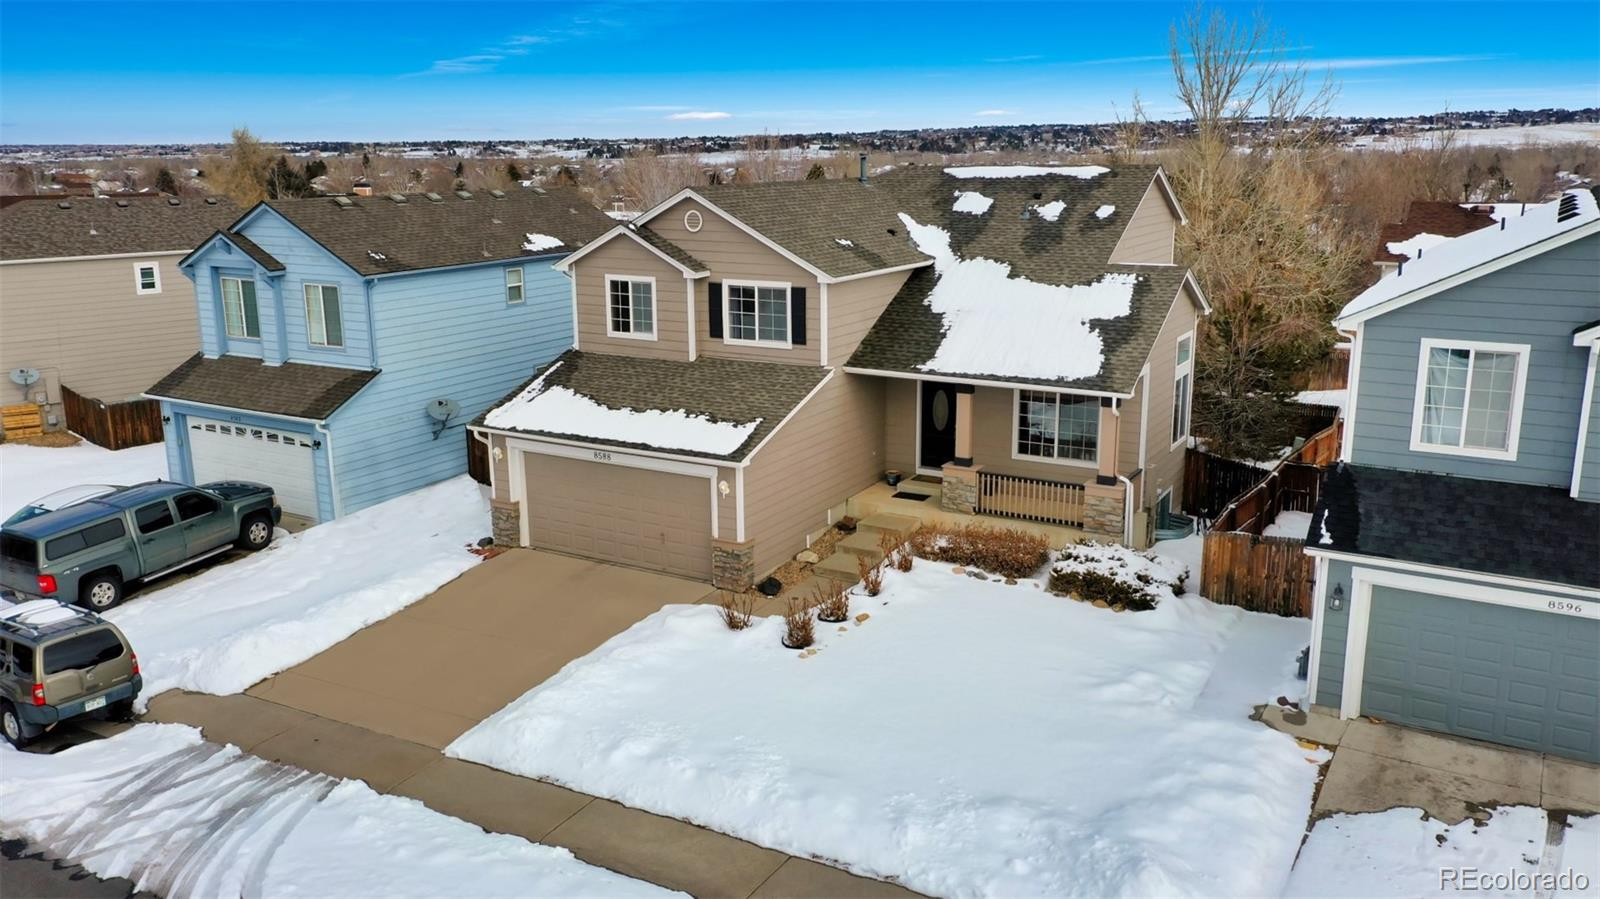 MLS# 5982392 - 31 - 8588 Sweet Clover Way, Parker, CO 80134